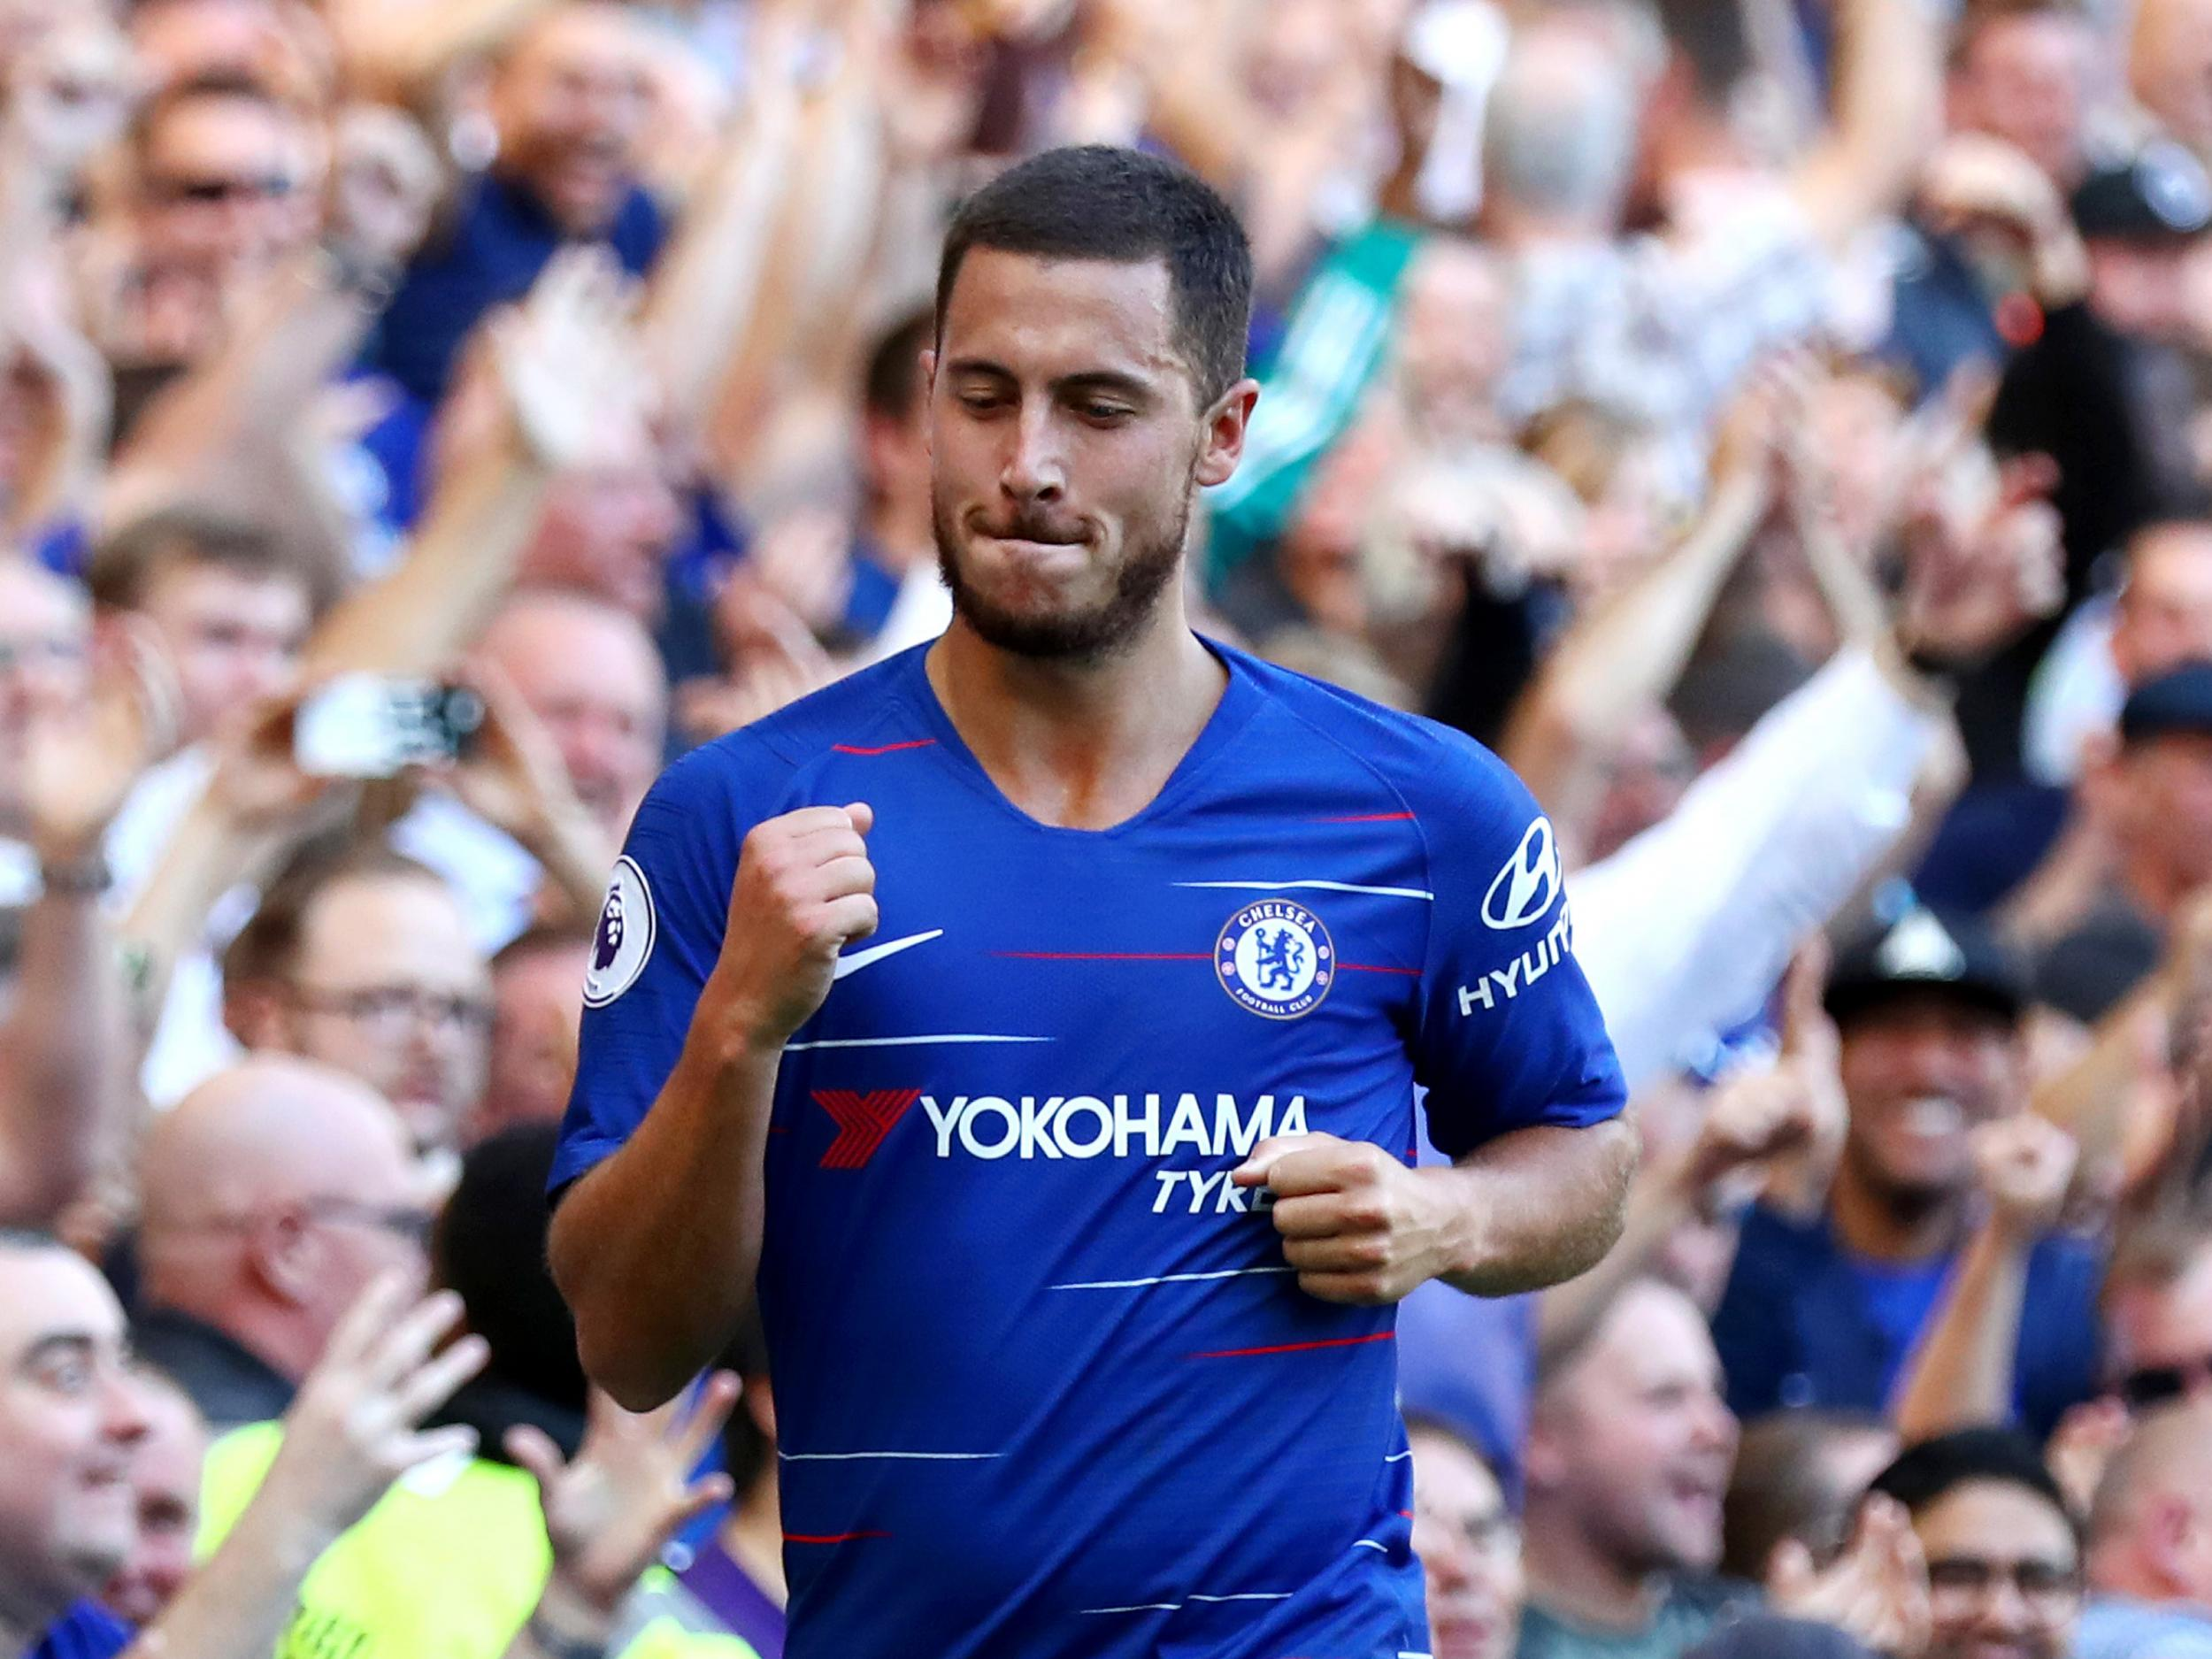 Eden Hazard can fulfil his potential at Chelsea and doesn't need Real Madrid transfer, says Gianfranco Zola